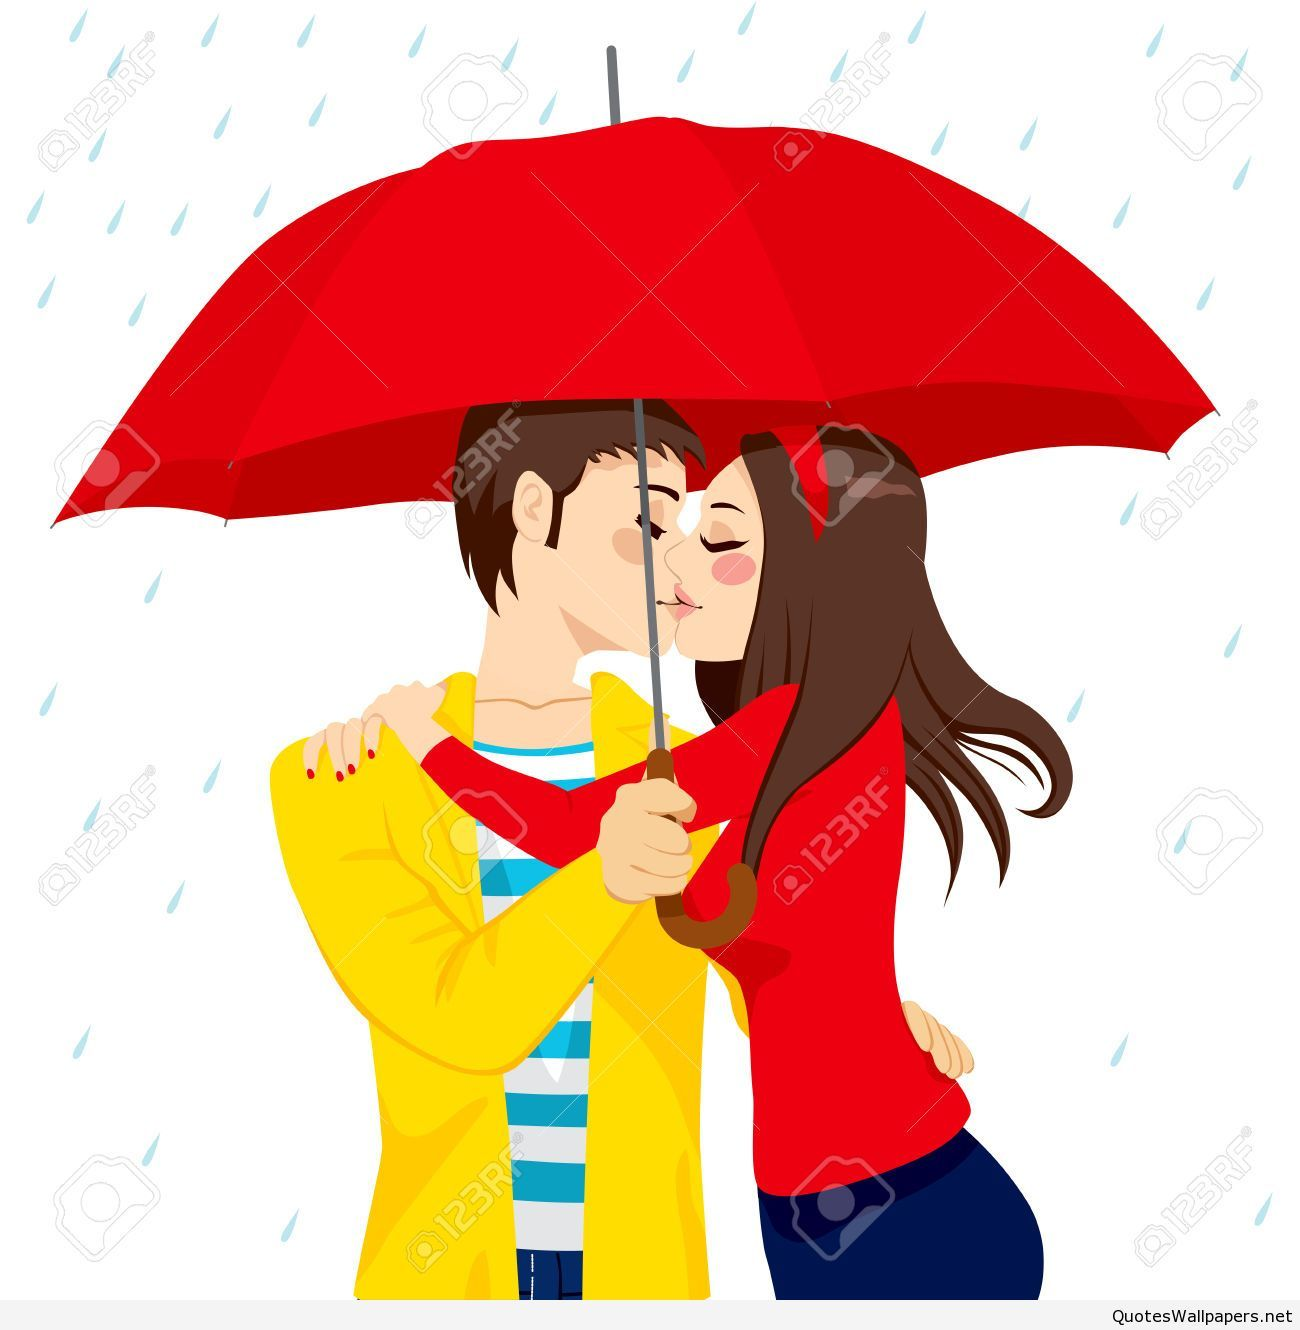 sweet couple in love hugging and kissing under big red umbrella on